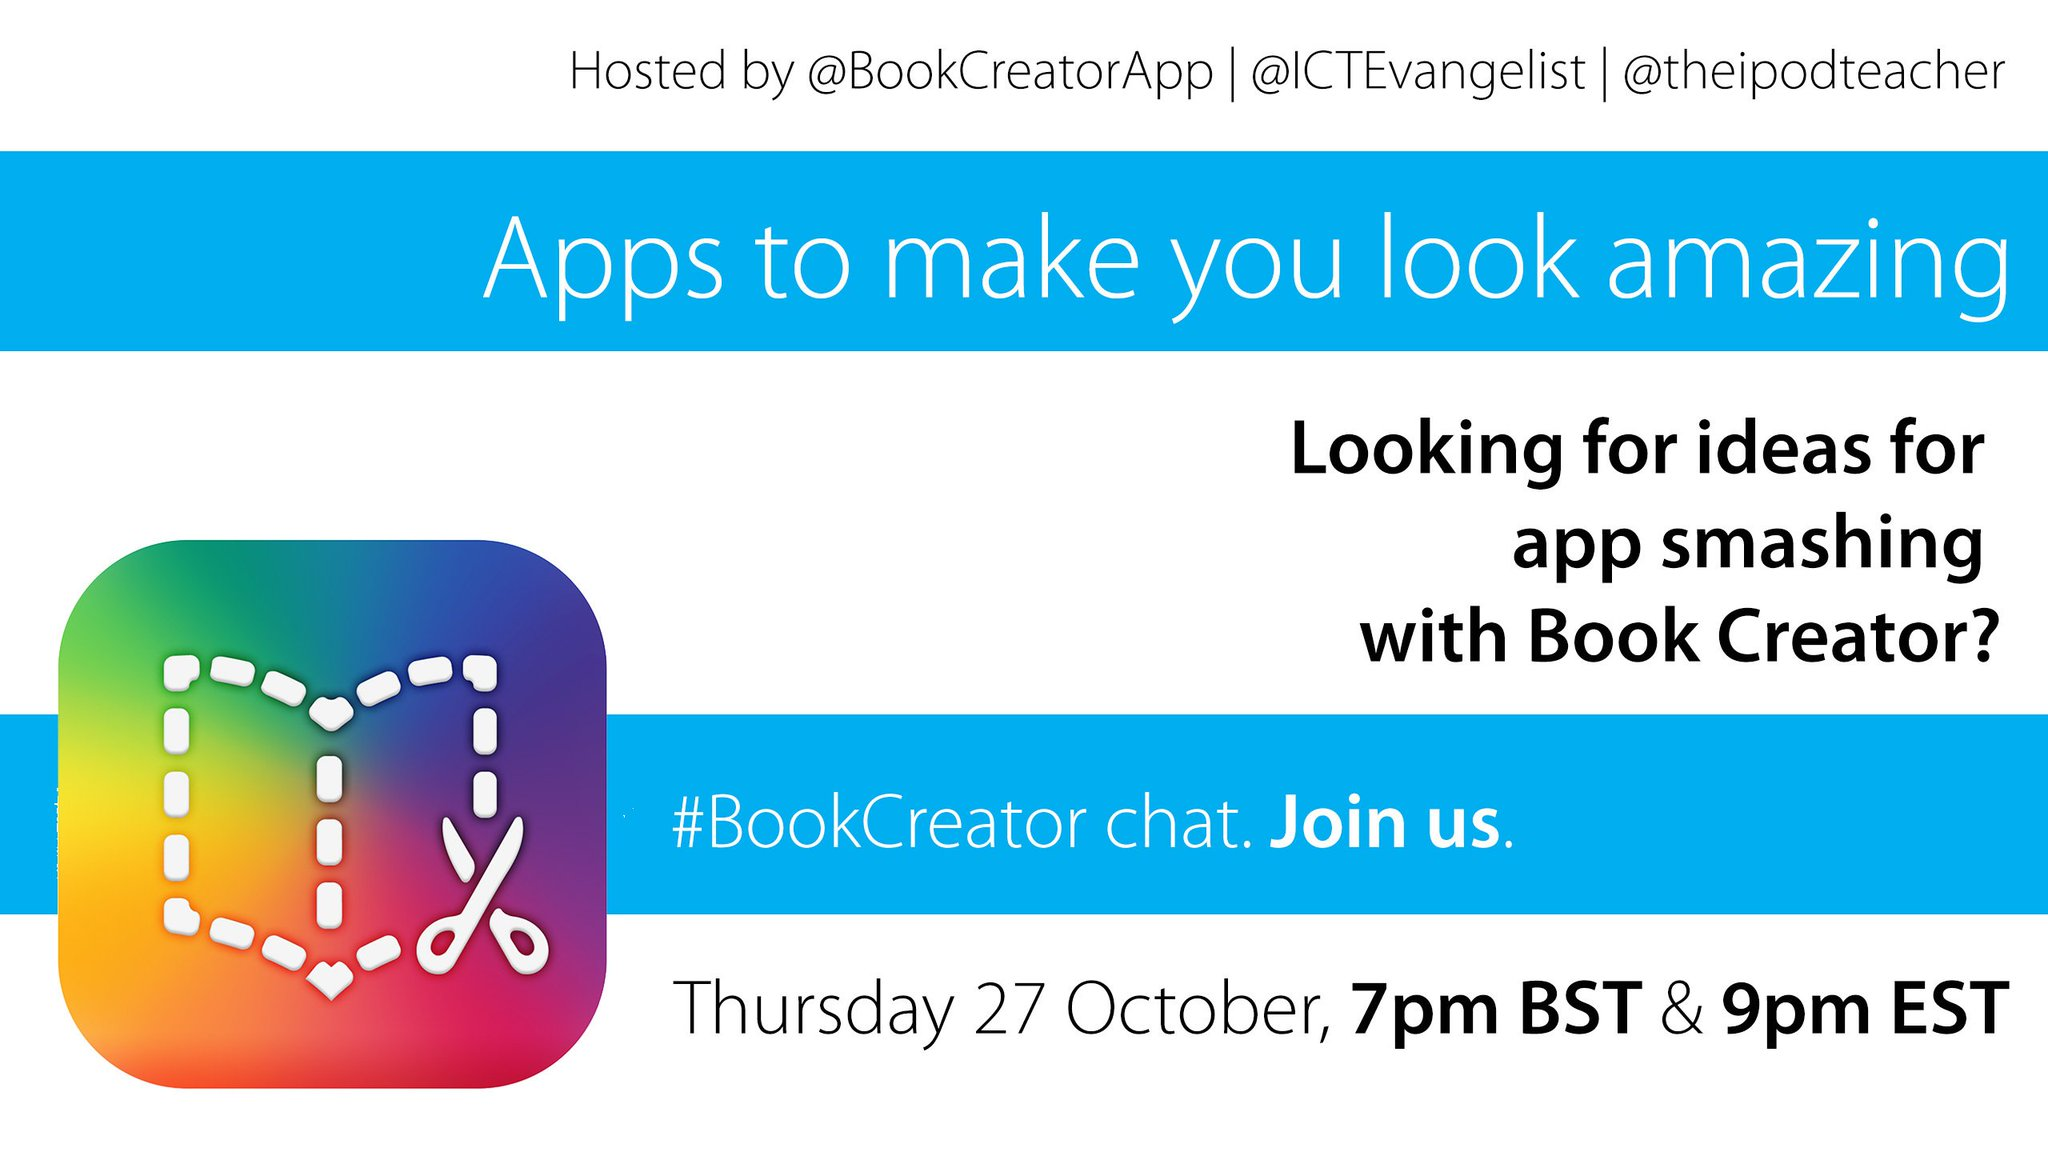 Thumbnail for #BookCreator Chat - App Smashing (27 Oct 2016) - UK